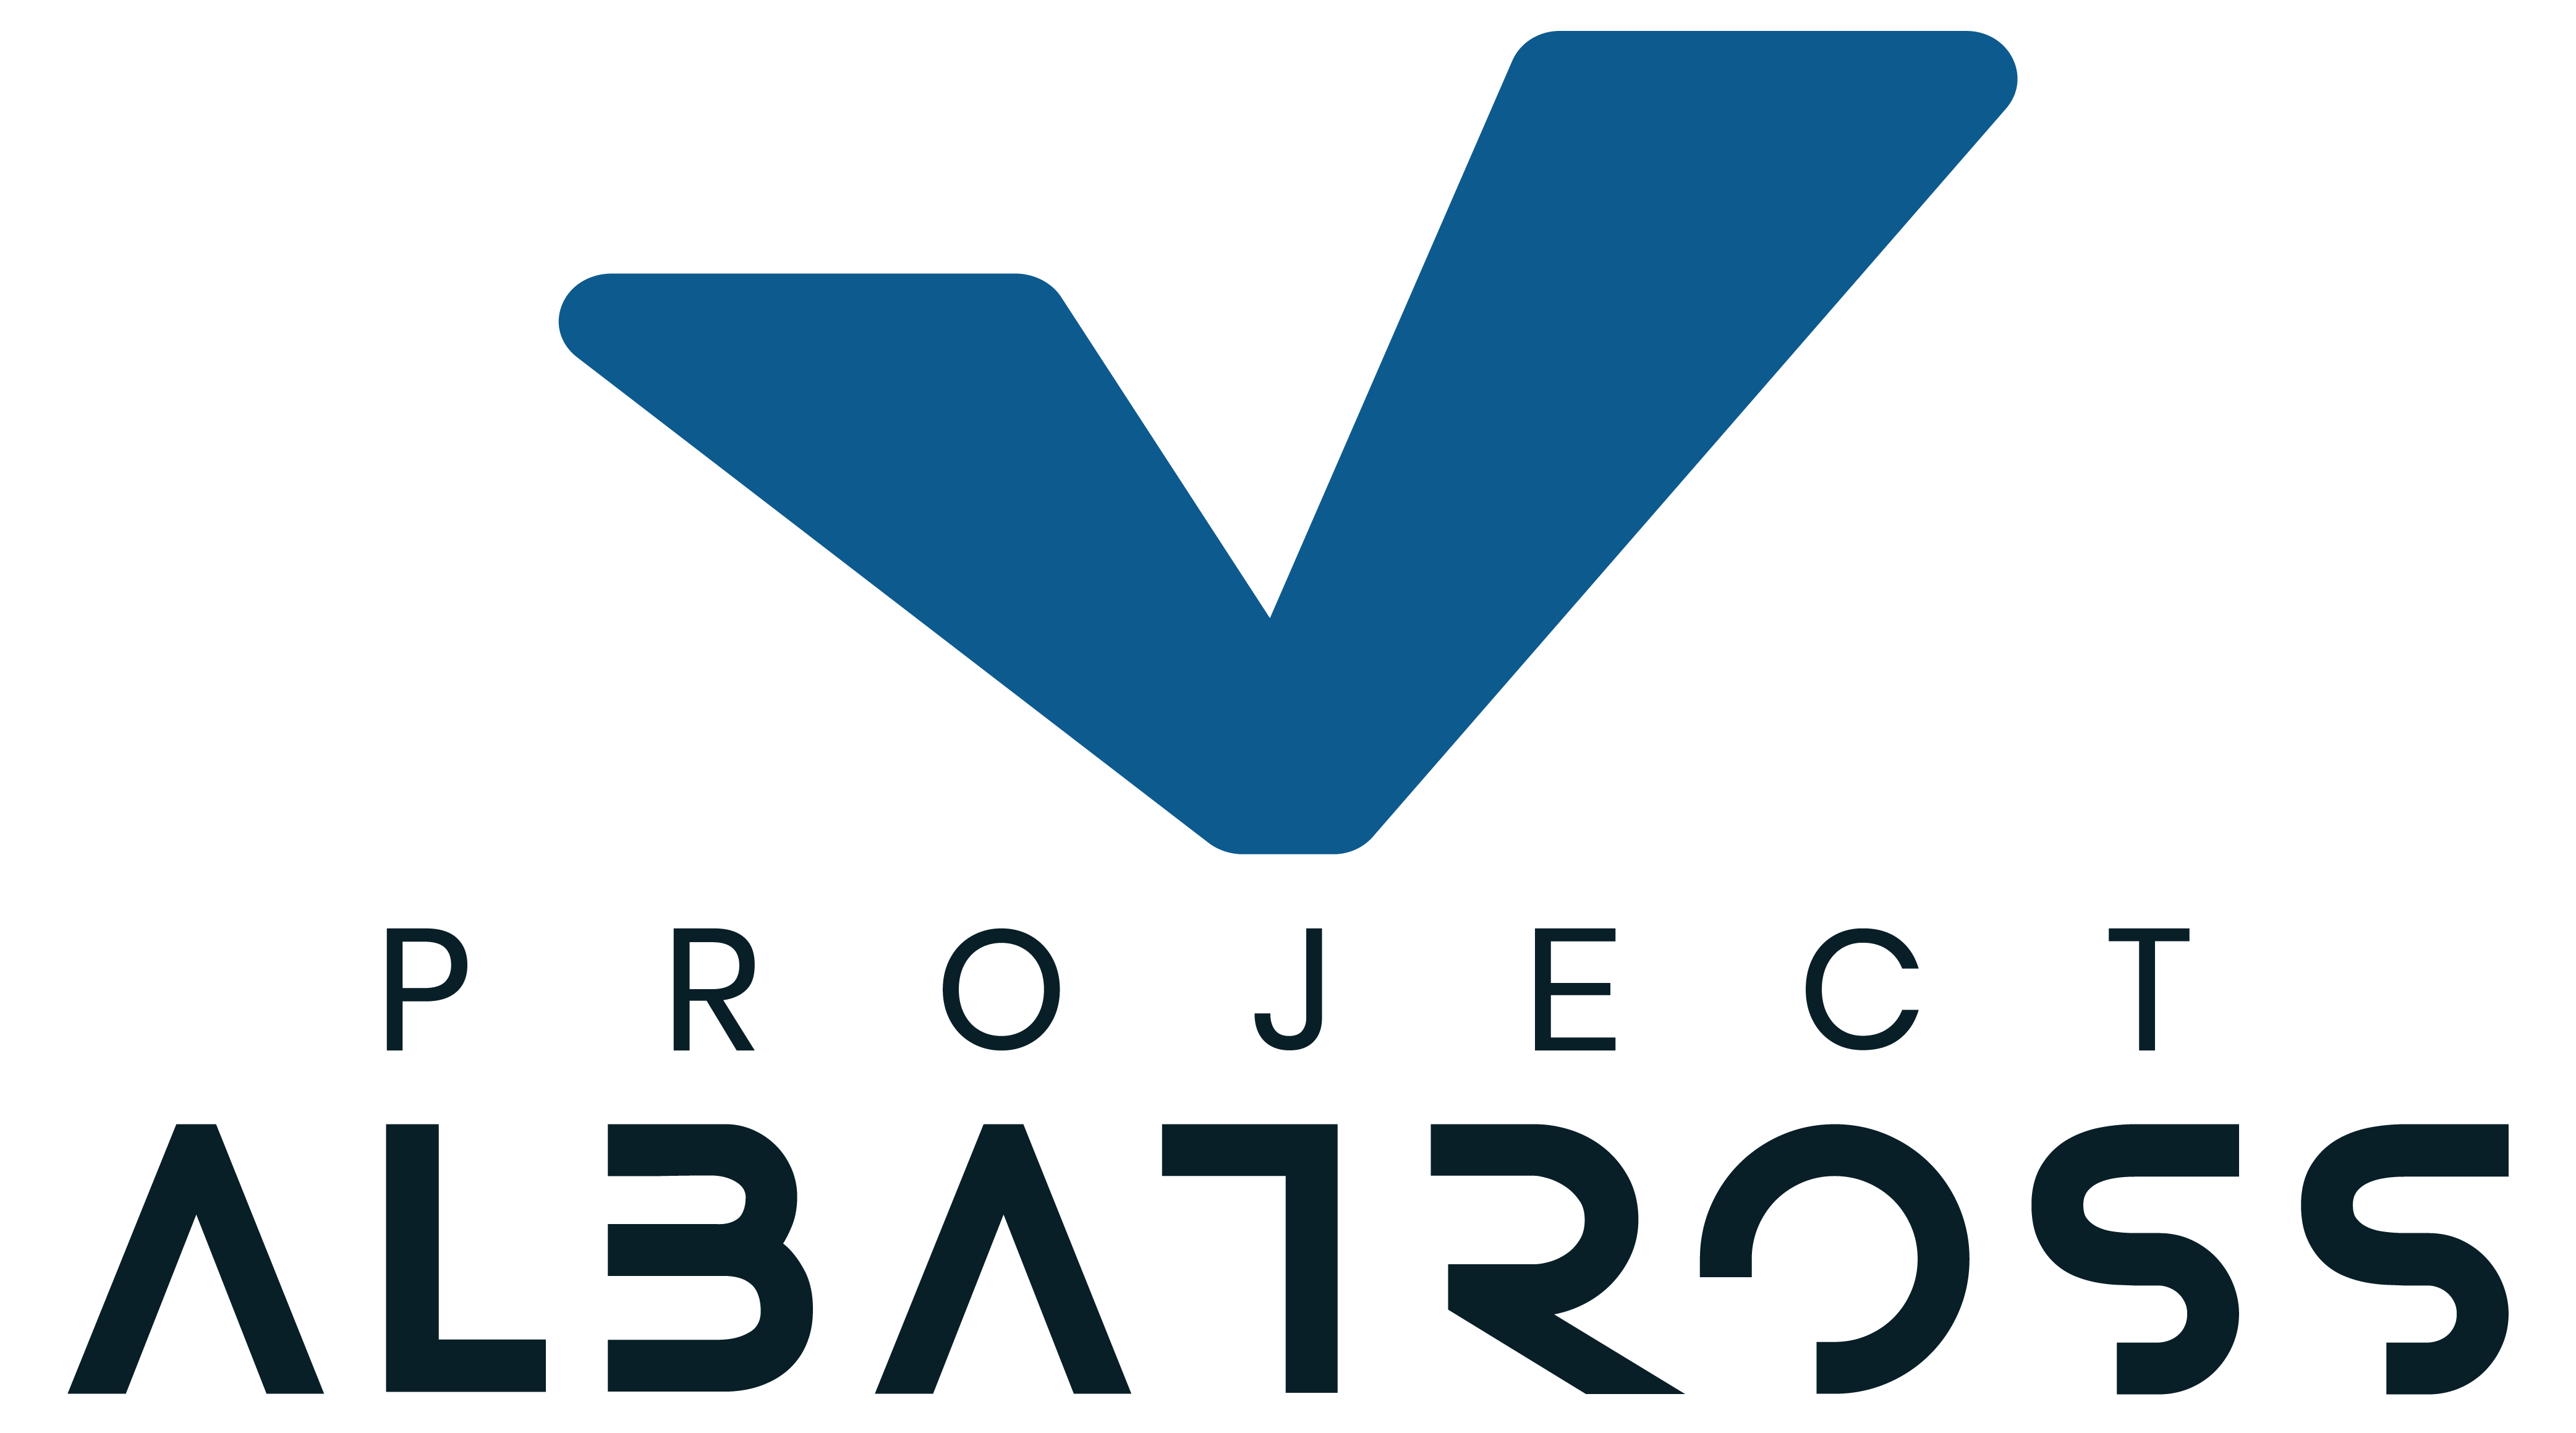 blog.projectalbatross